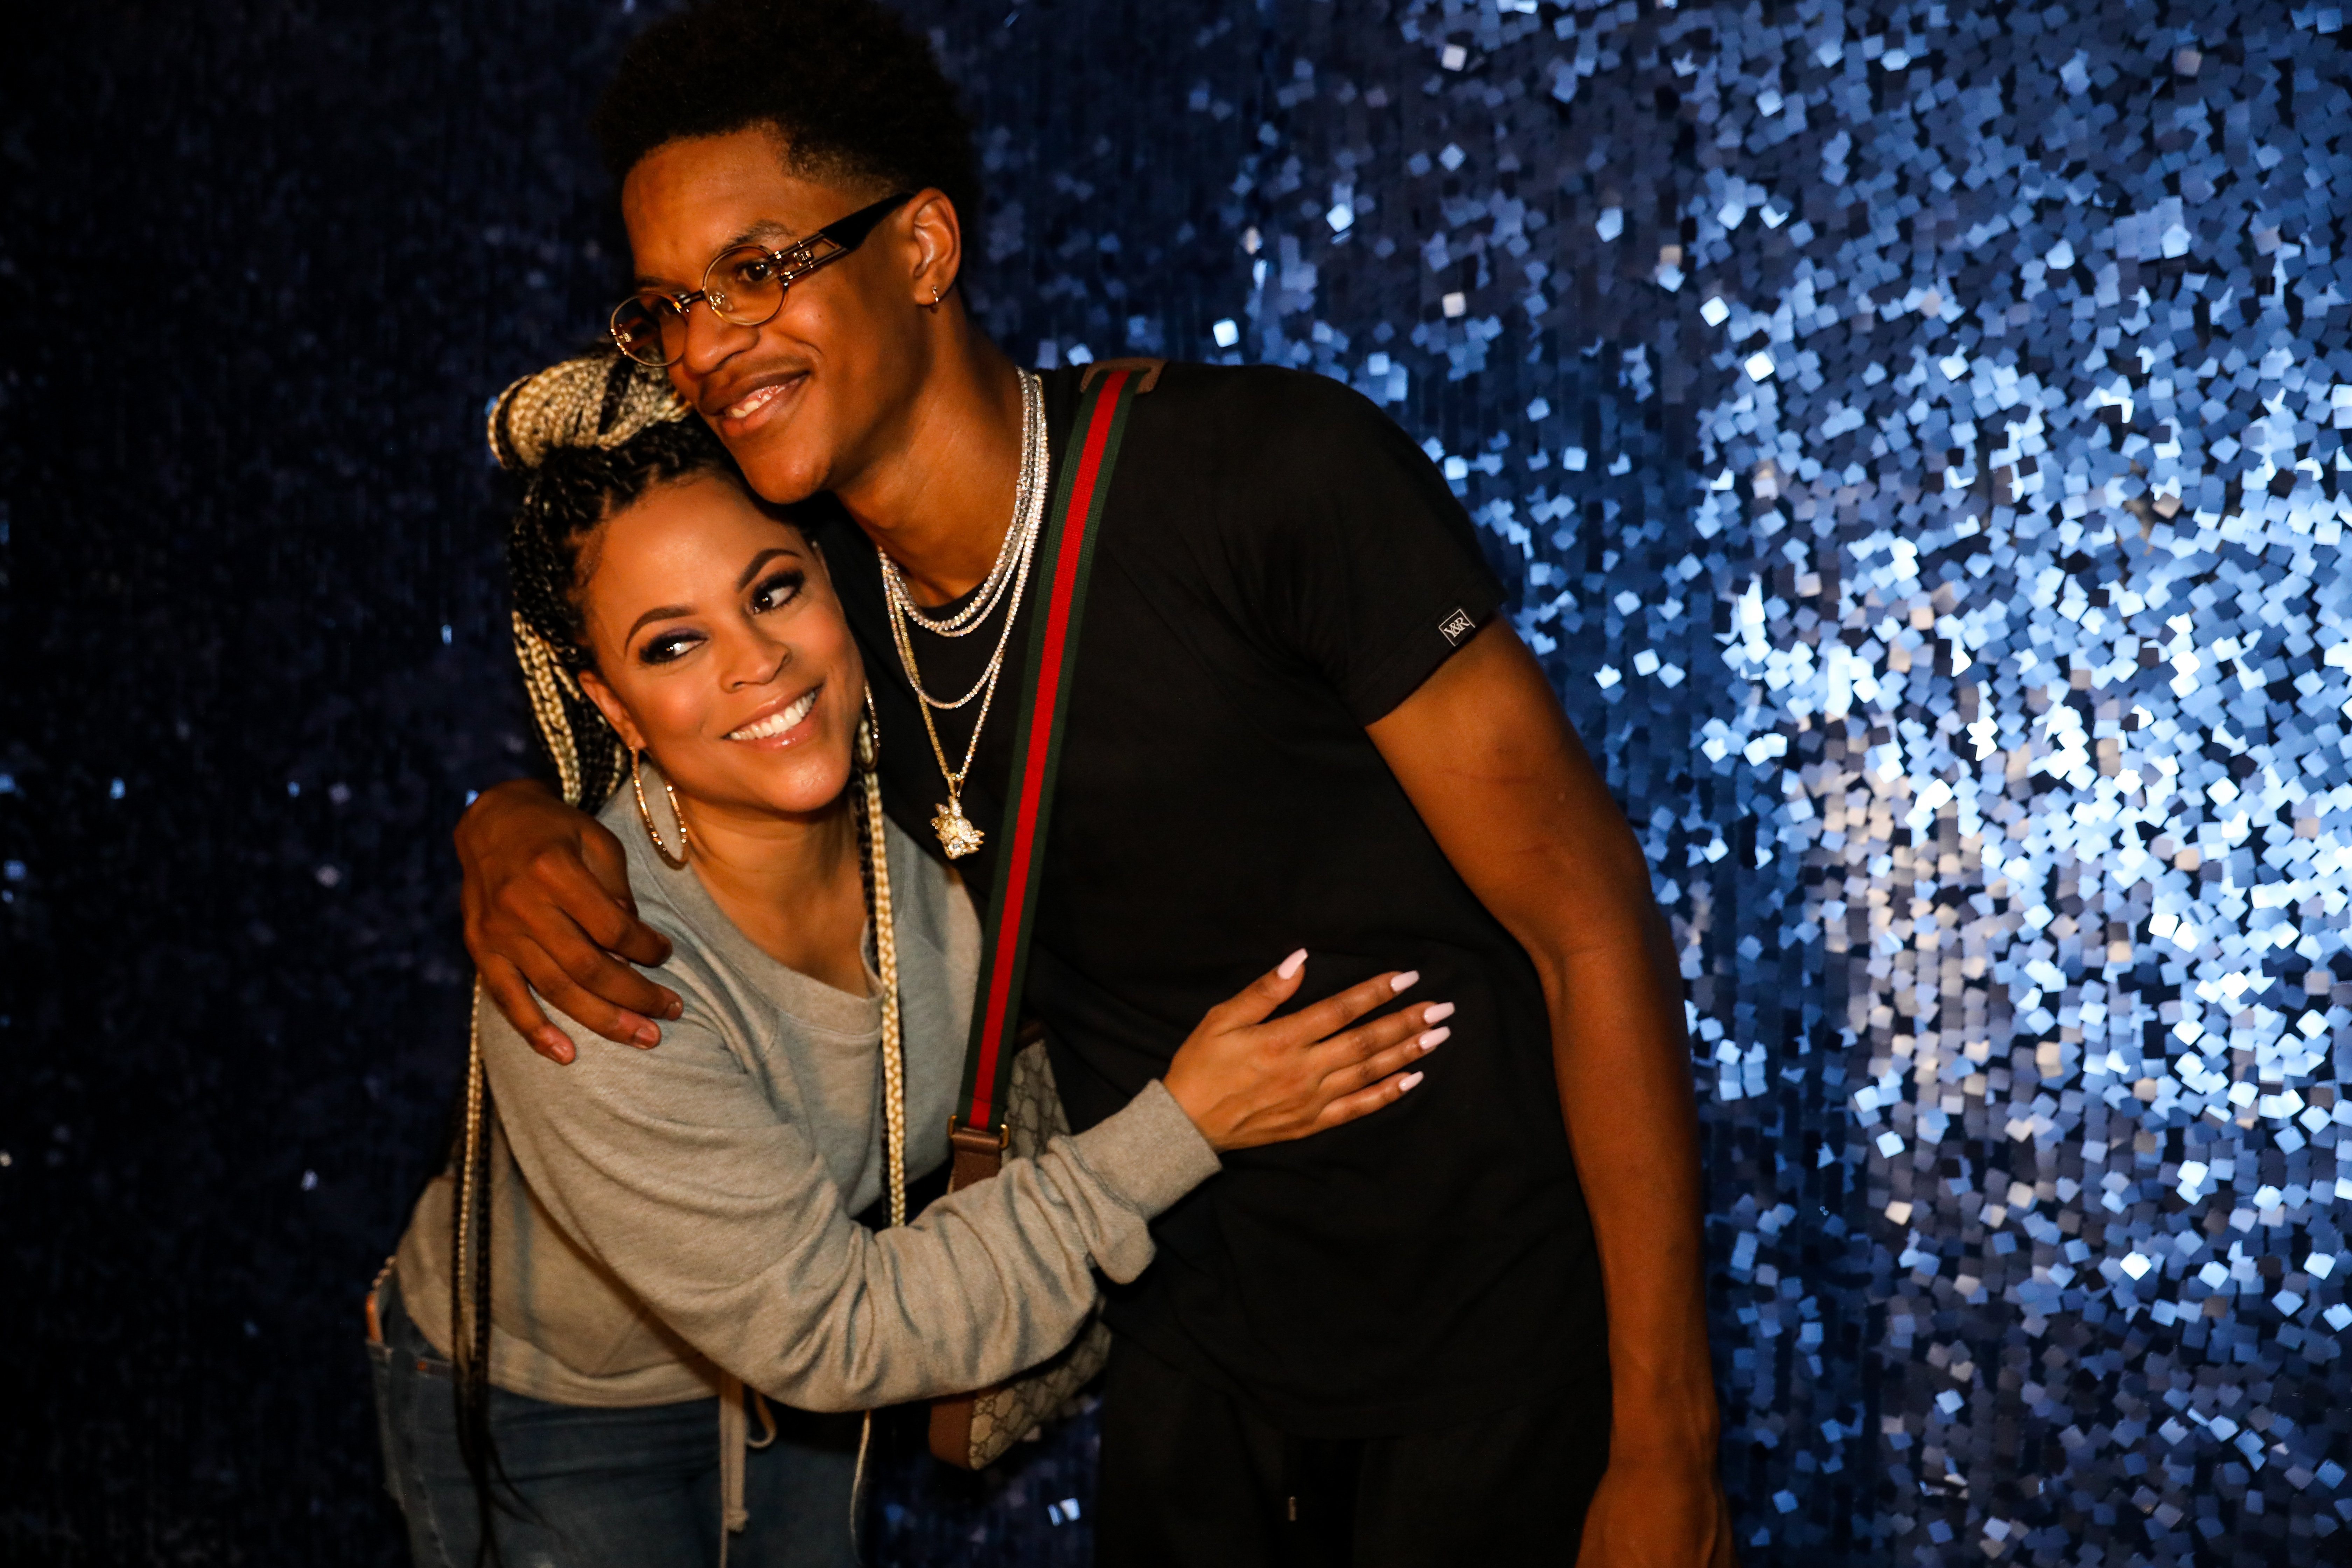 Shaunie O'Neal and Shareef O'Neal at his 18th birthday party, 2018 in California   Source: Getty Images